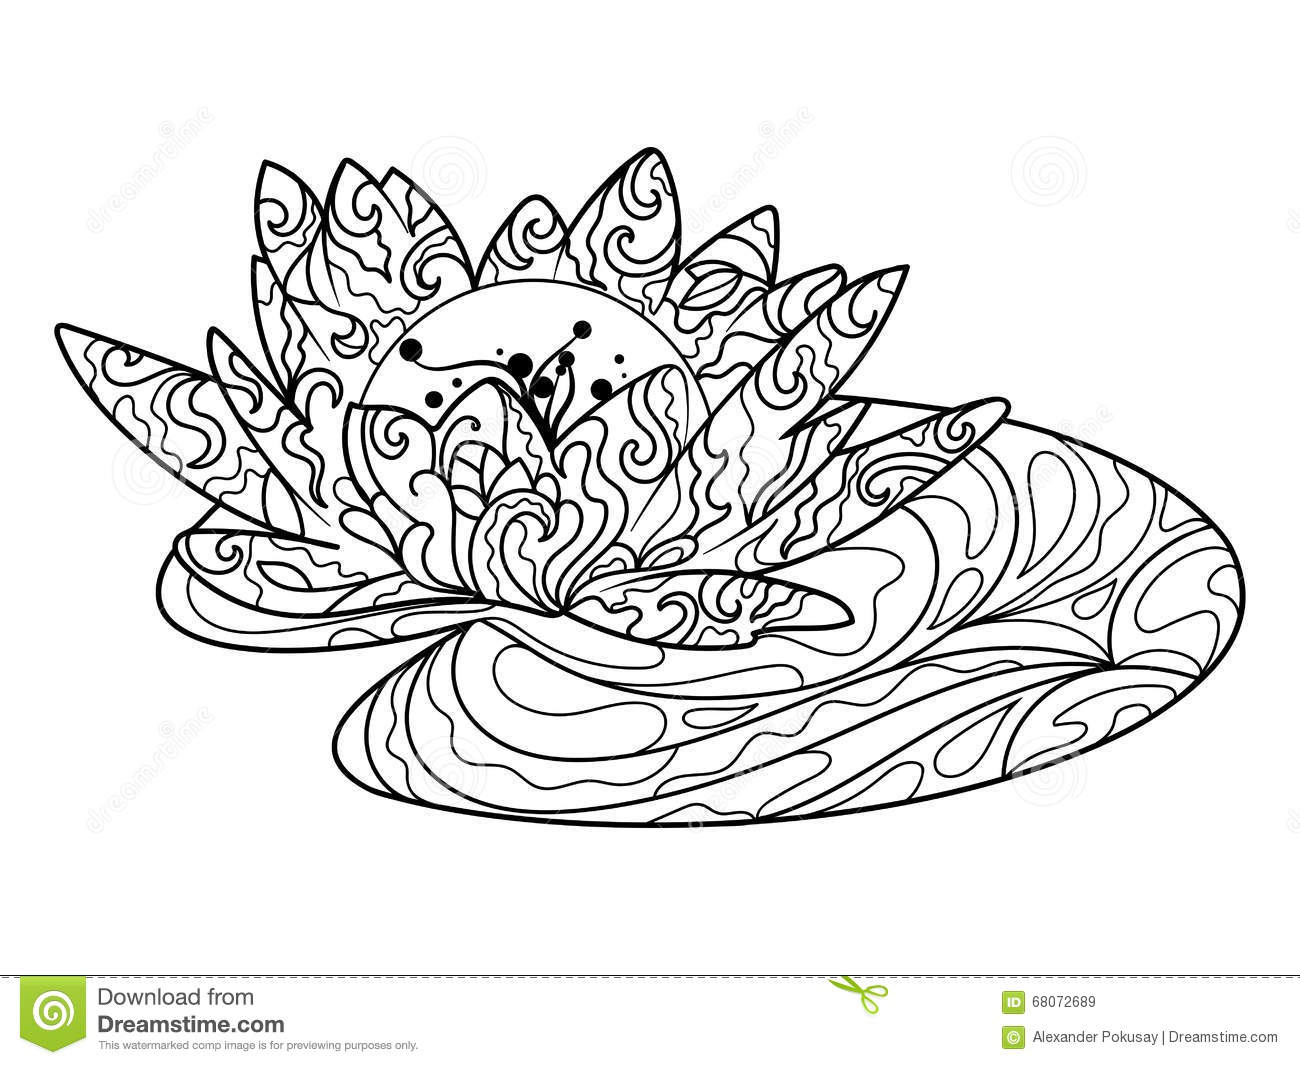 lotus-flower-coloring-book-adults-vector-water-lily-illustration-anti-stress-adult-zentangle-style-black-68072689